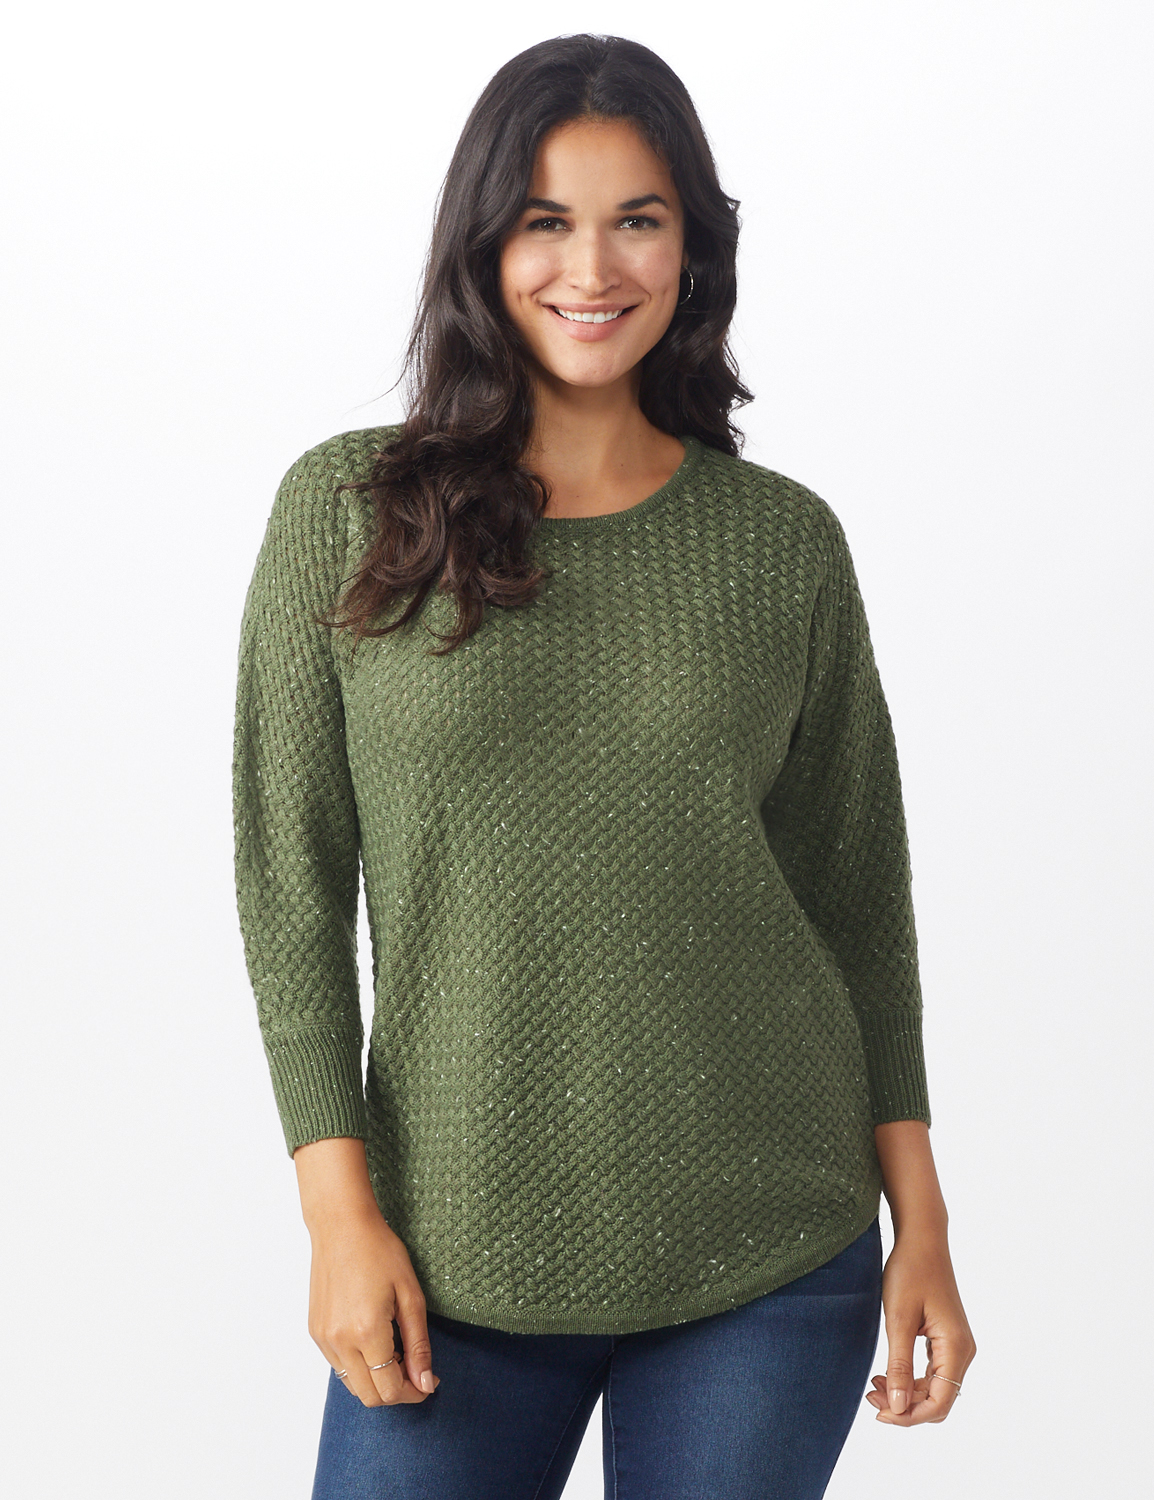 Westport Zig Zag Stitch Curved Hem Sweater - Misses -Dried Sage - Front